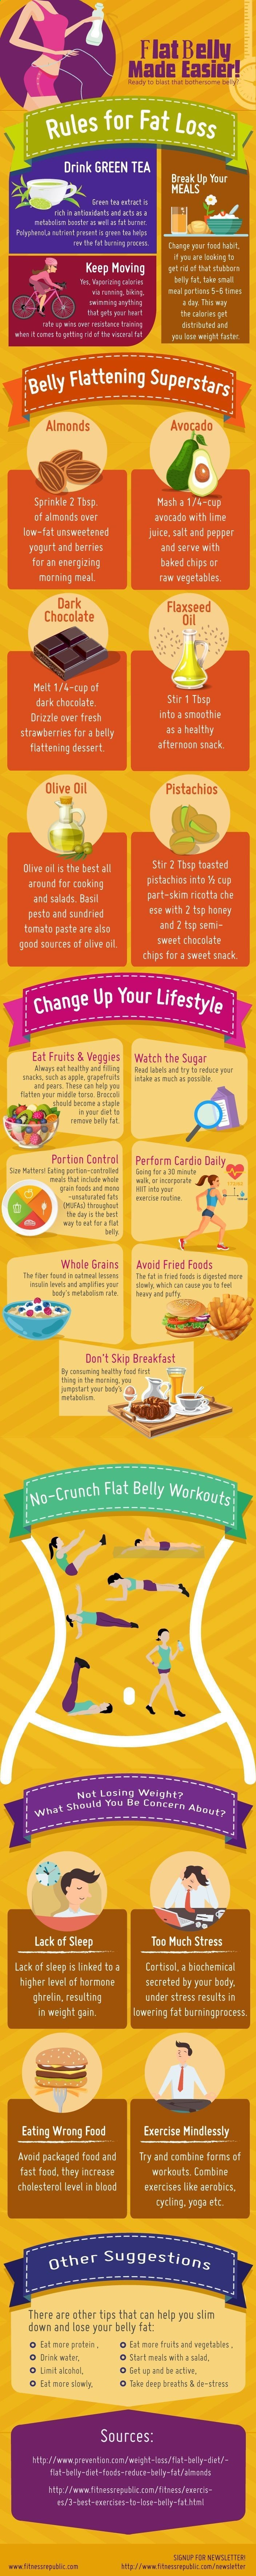 Gaining a flat belly can be a real struggle. Often, the difficulty is because of the belief we put in misconceptions. Heres how to get a flat belly.